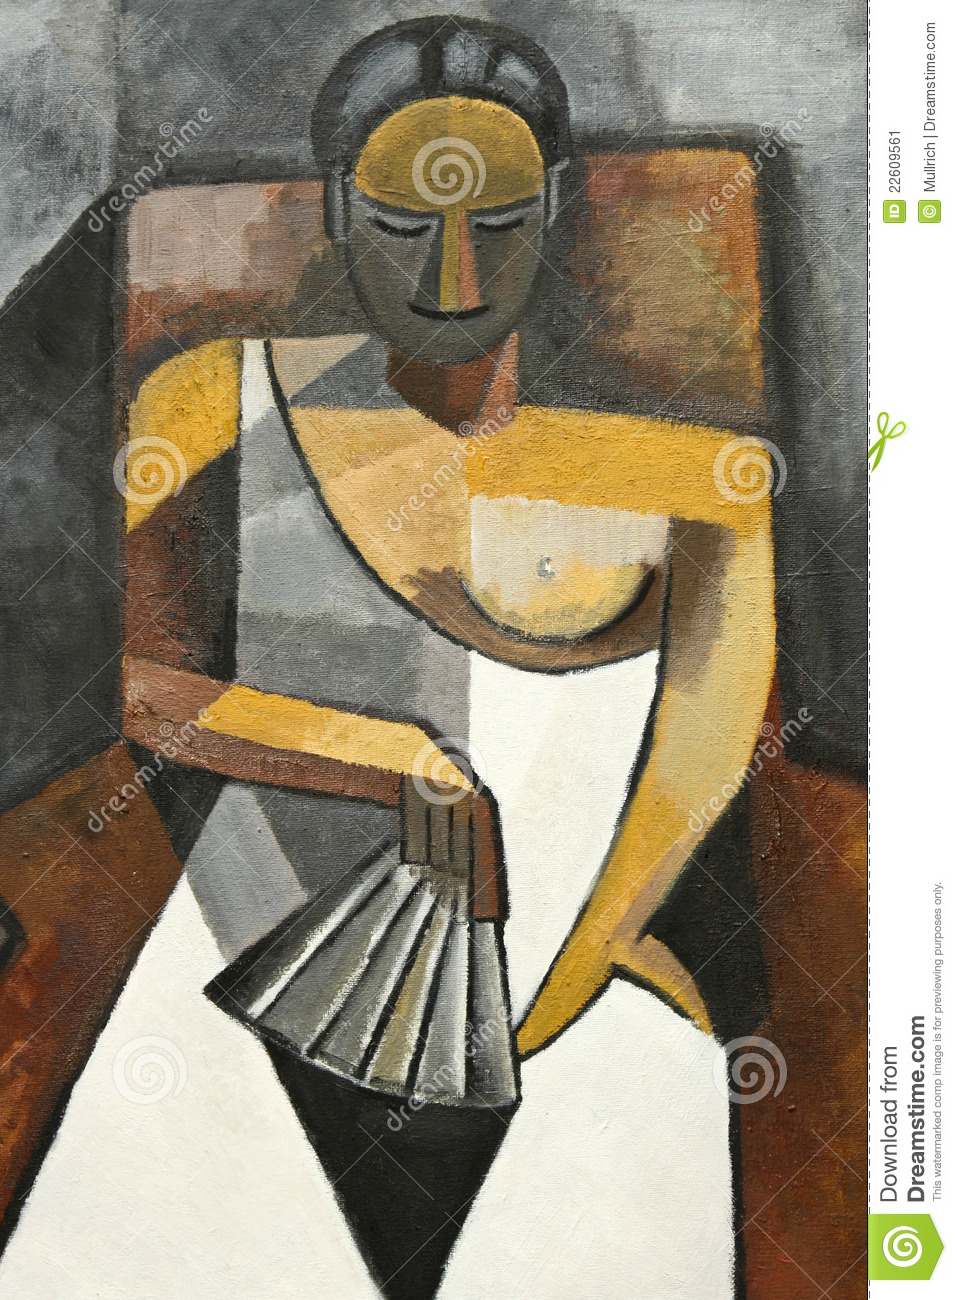 Kubisme Pablo Picasso Cubism Painting Of Woman In Chair Stock Image Image Of Woman